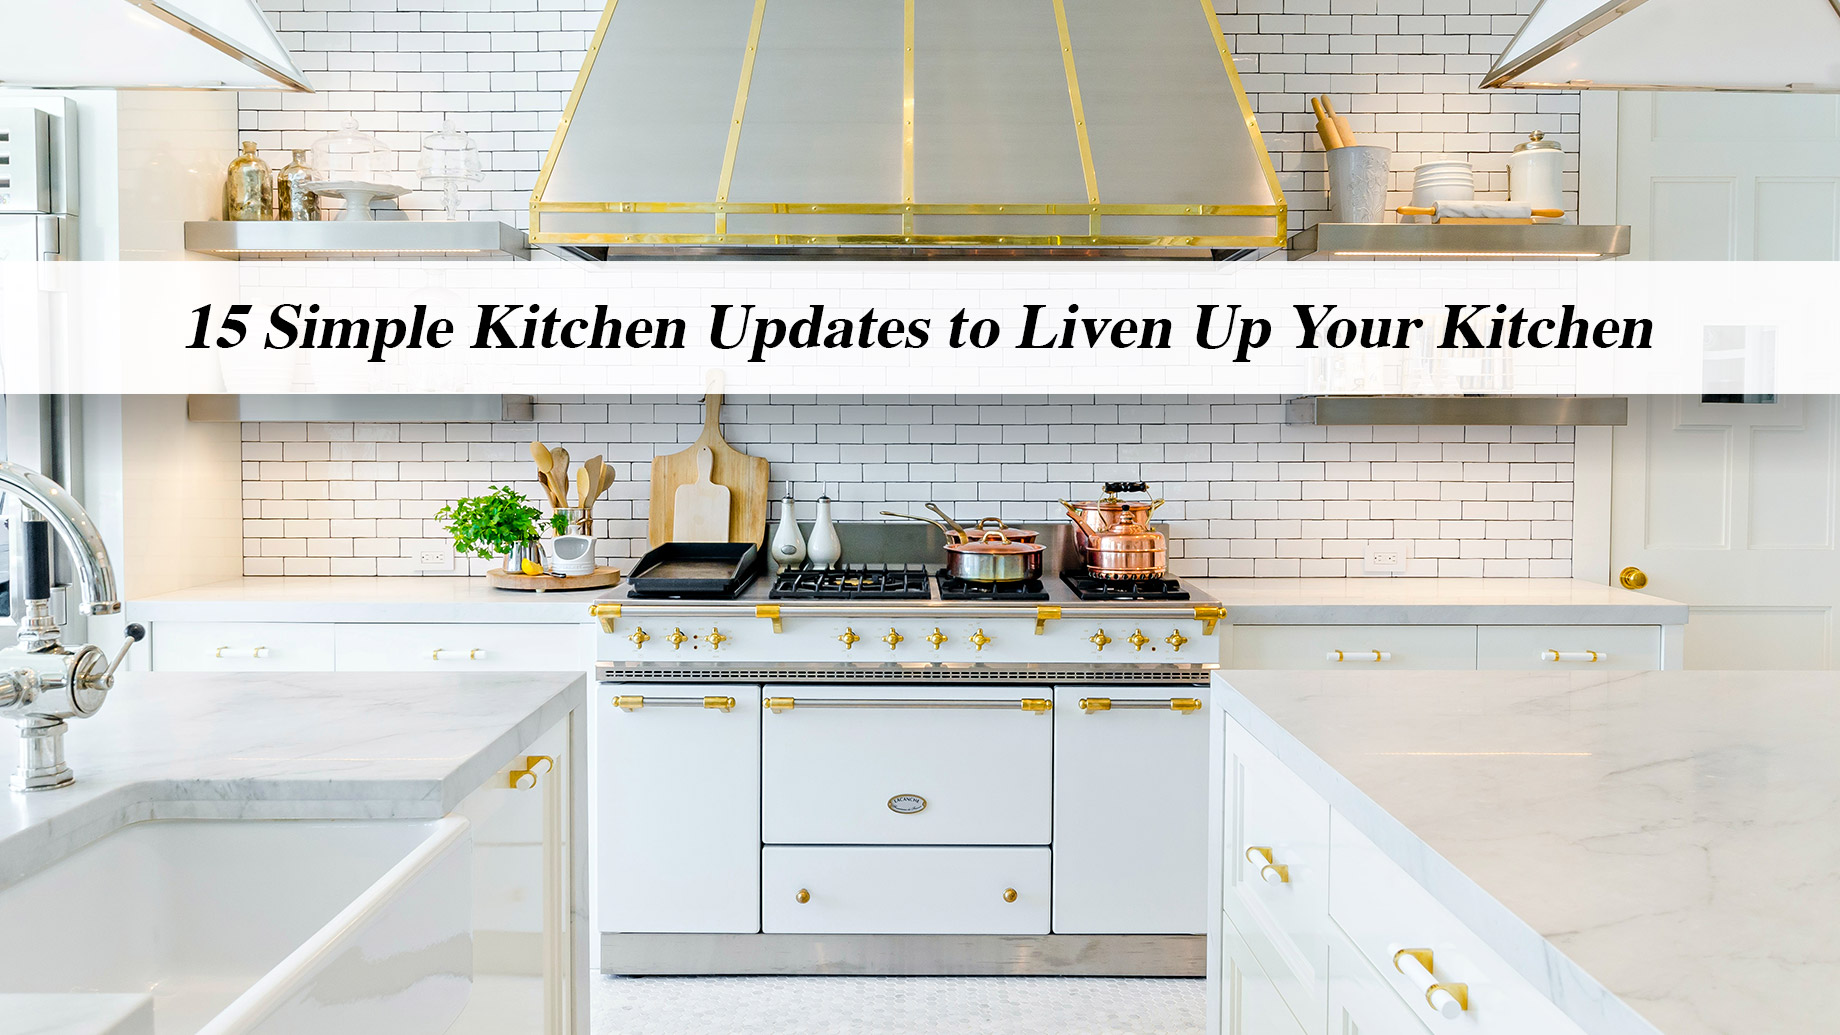 15 Simple Kitchen Updates to Liven Up Your Kitchen